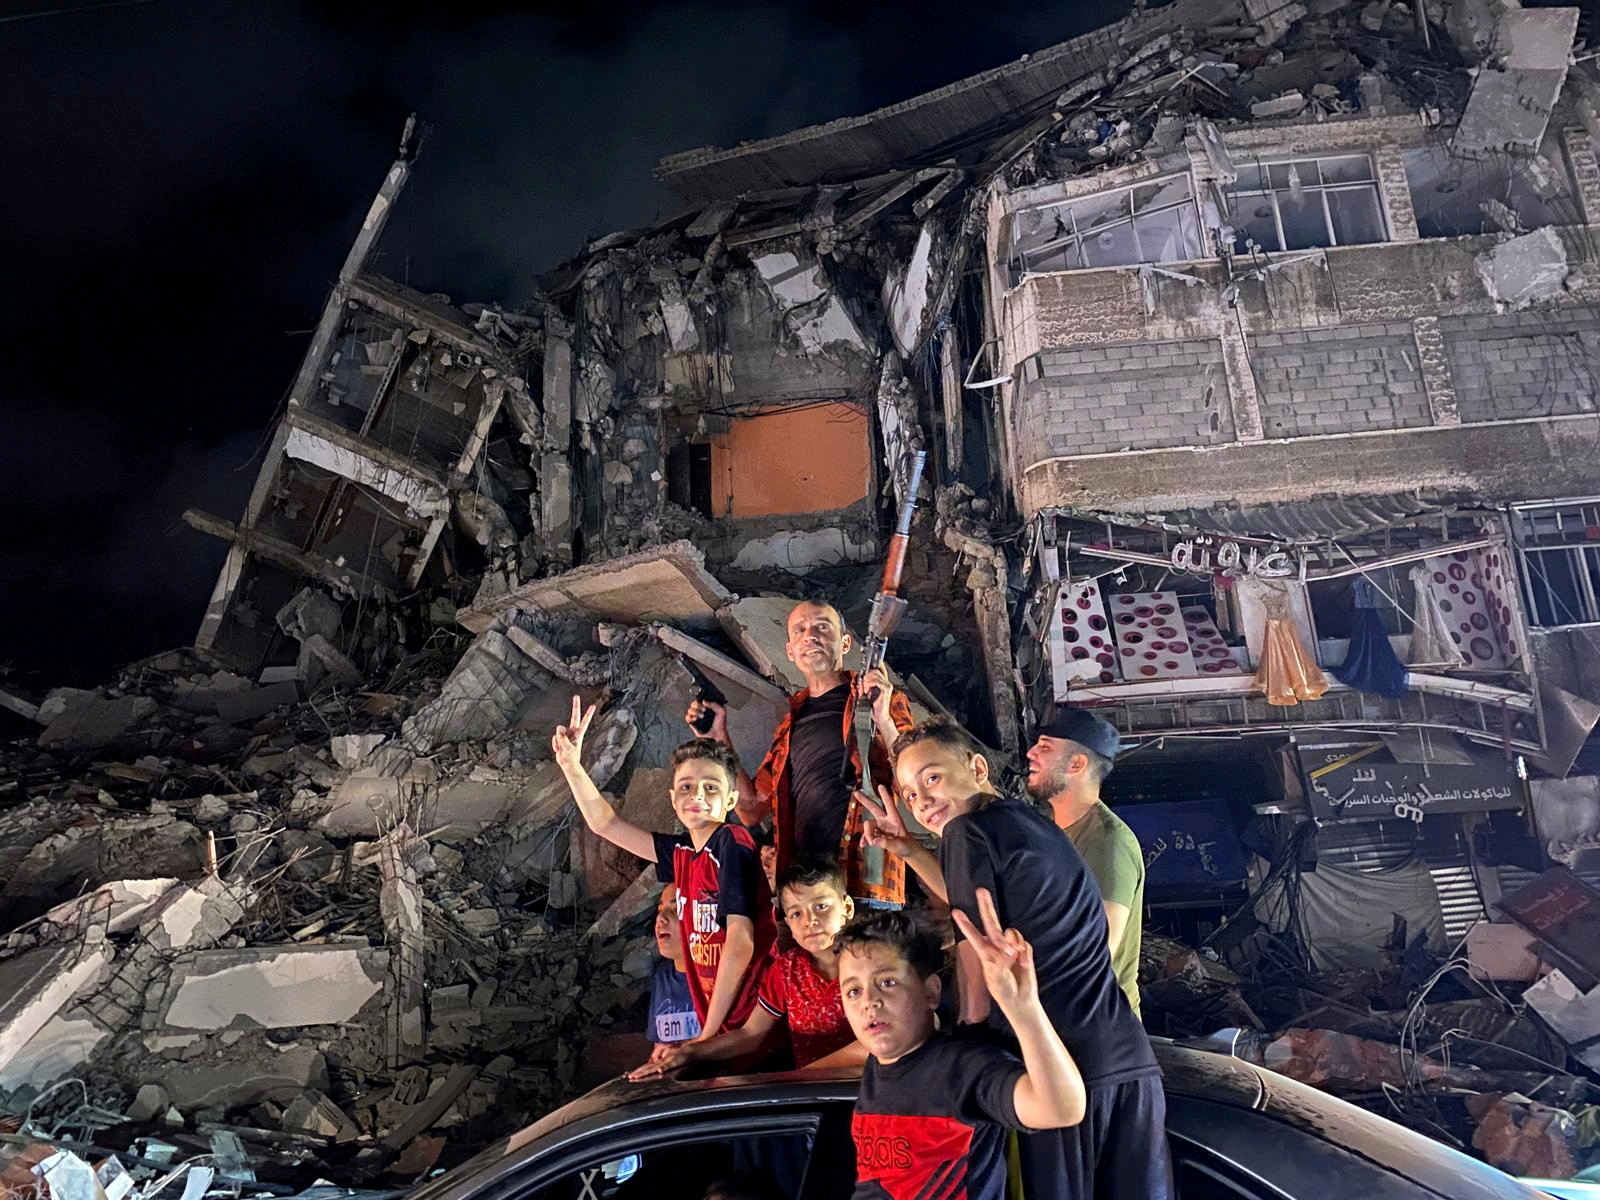 People gesture near the rubble of a damaged building as Palestinians celebrate in the streets following a ceasefire, in Gaza City May 21, 2021. REUTERS/Mohammed Salem